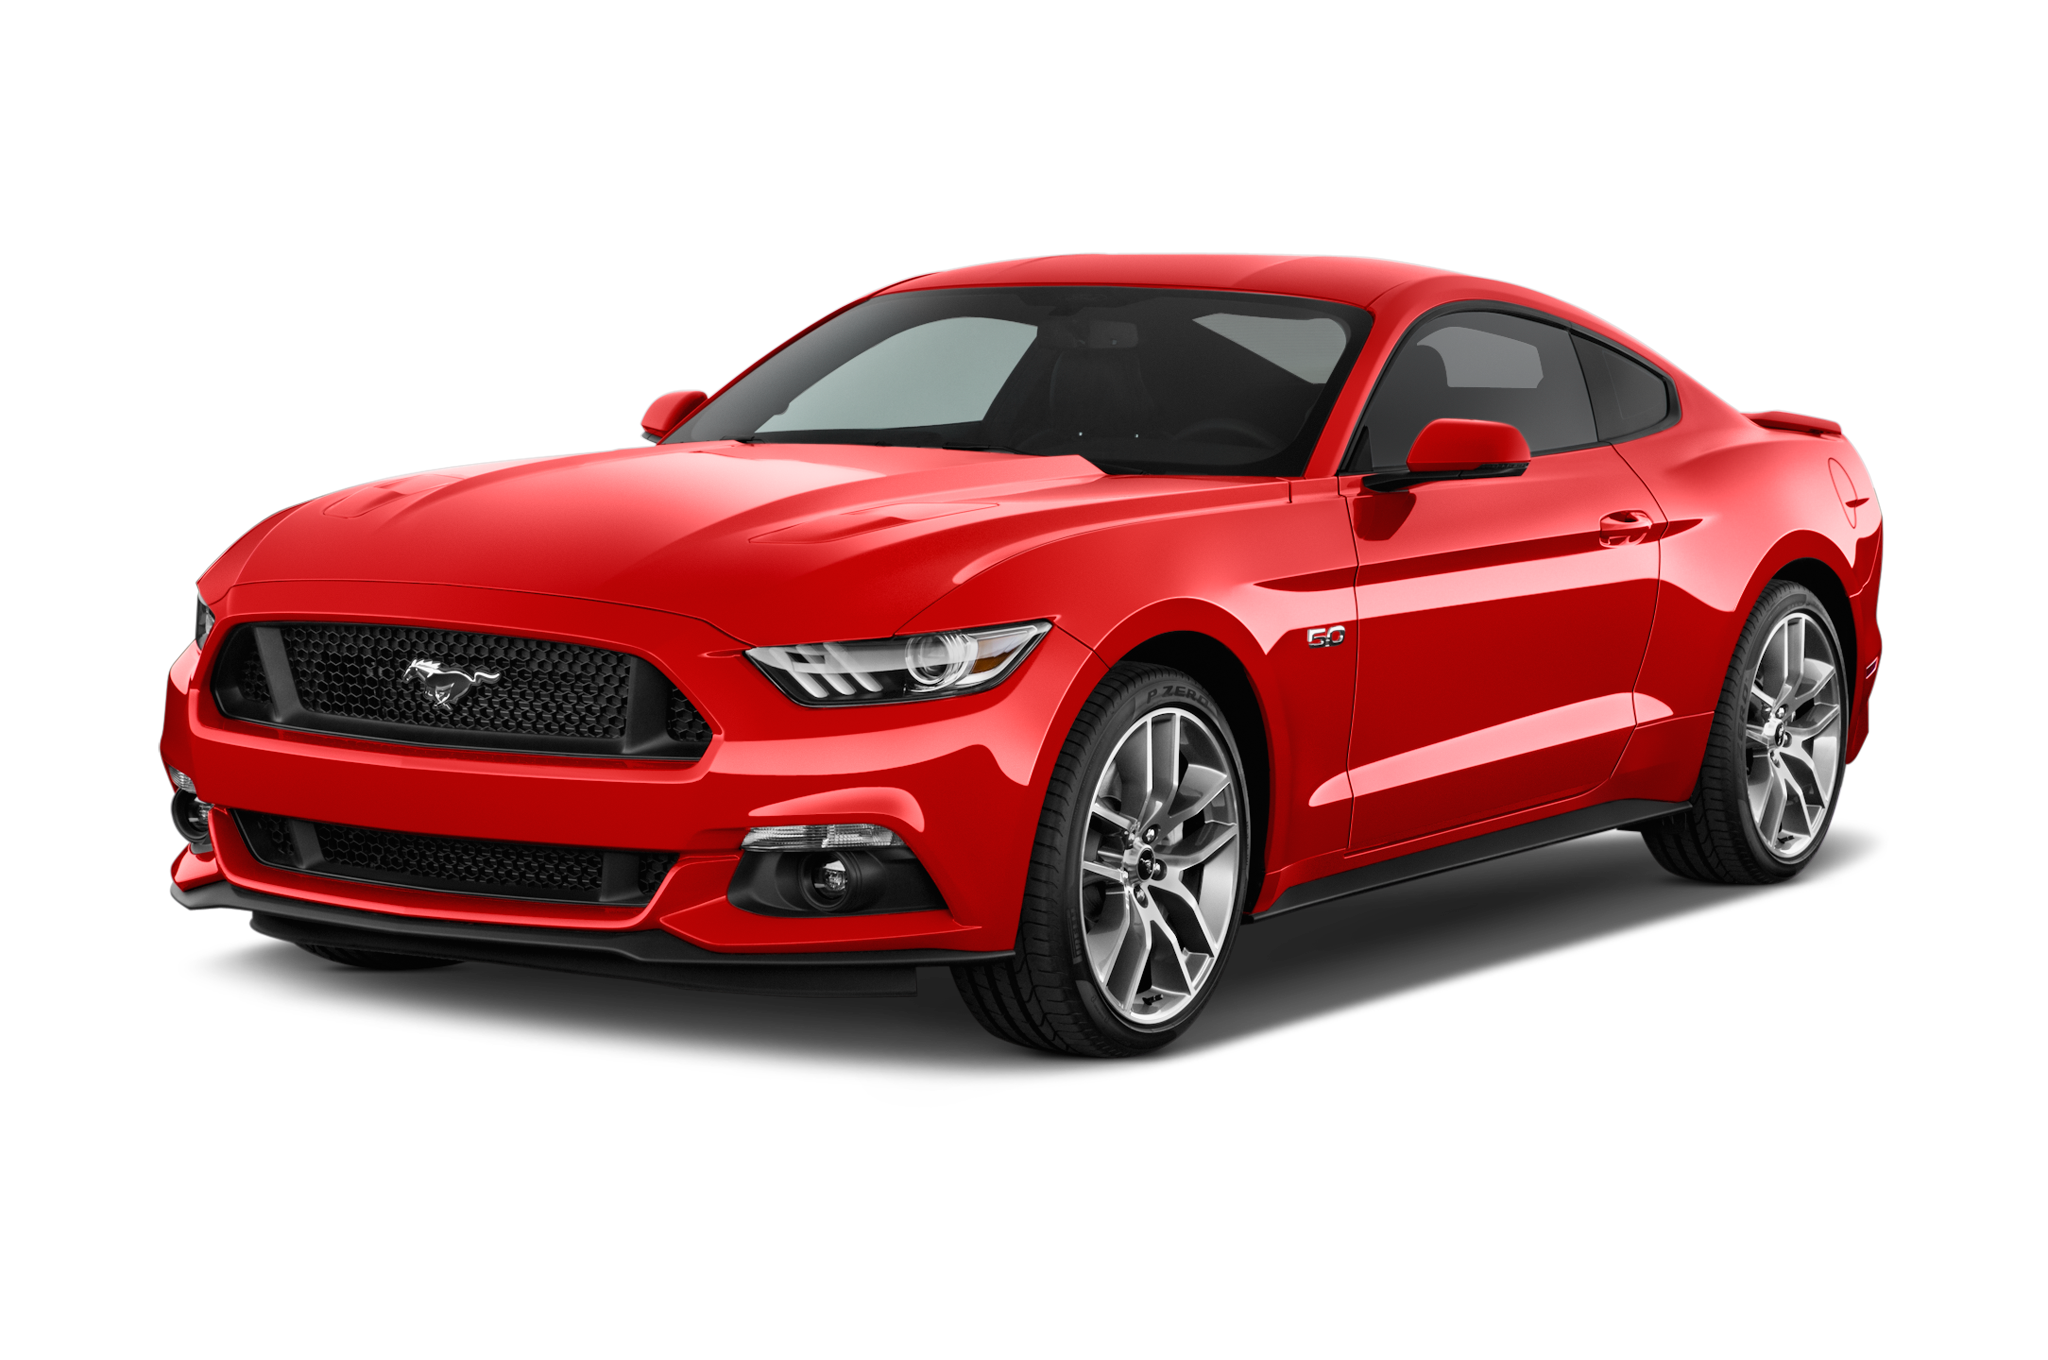 The Ford Mustang Designs That Never Made It